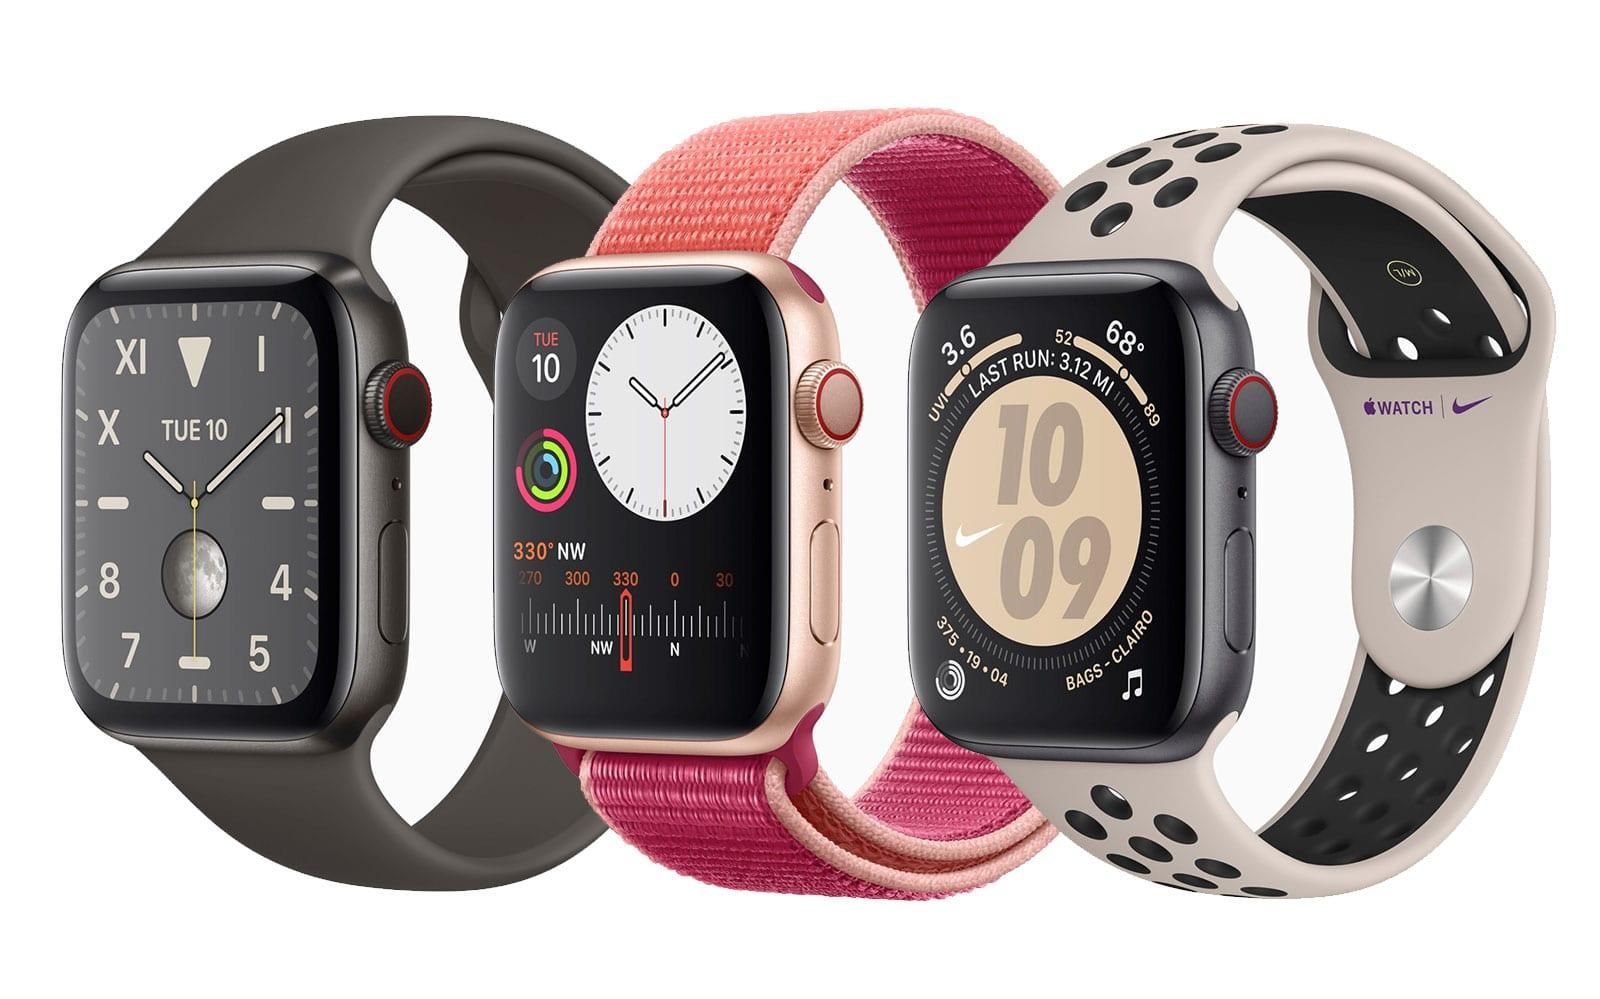 Apple Watch Series 5 features an always-on display | Engadget